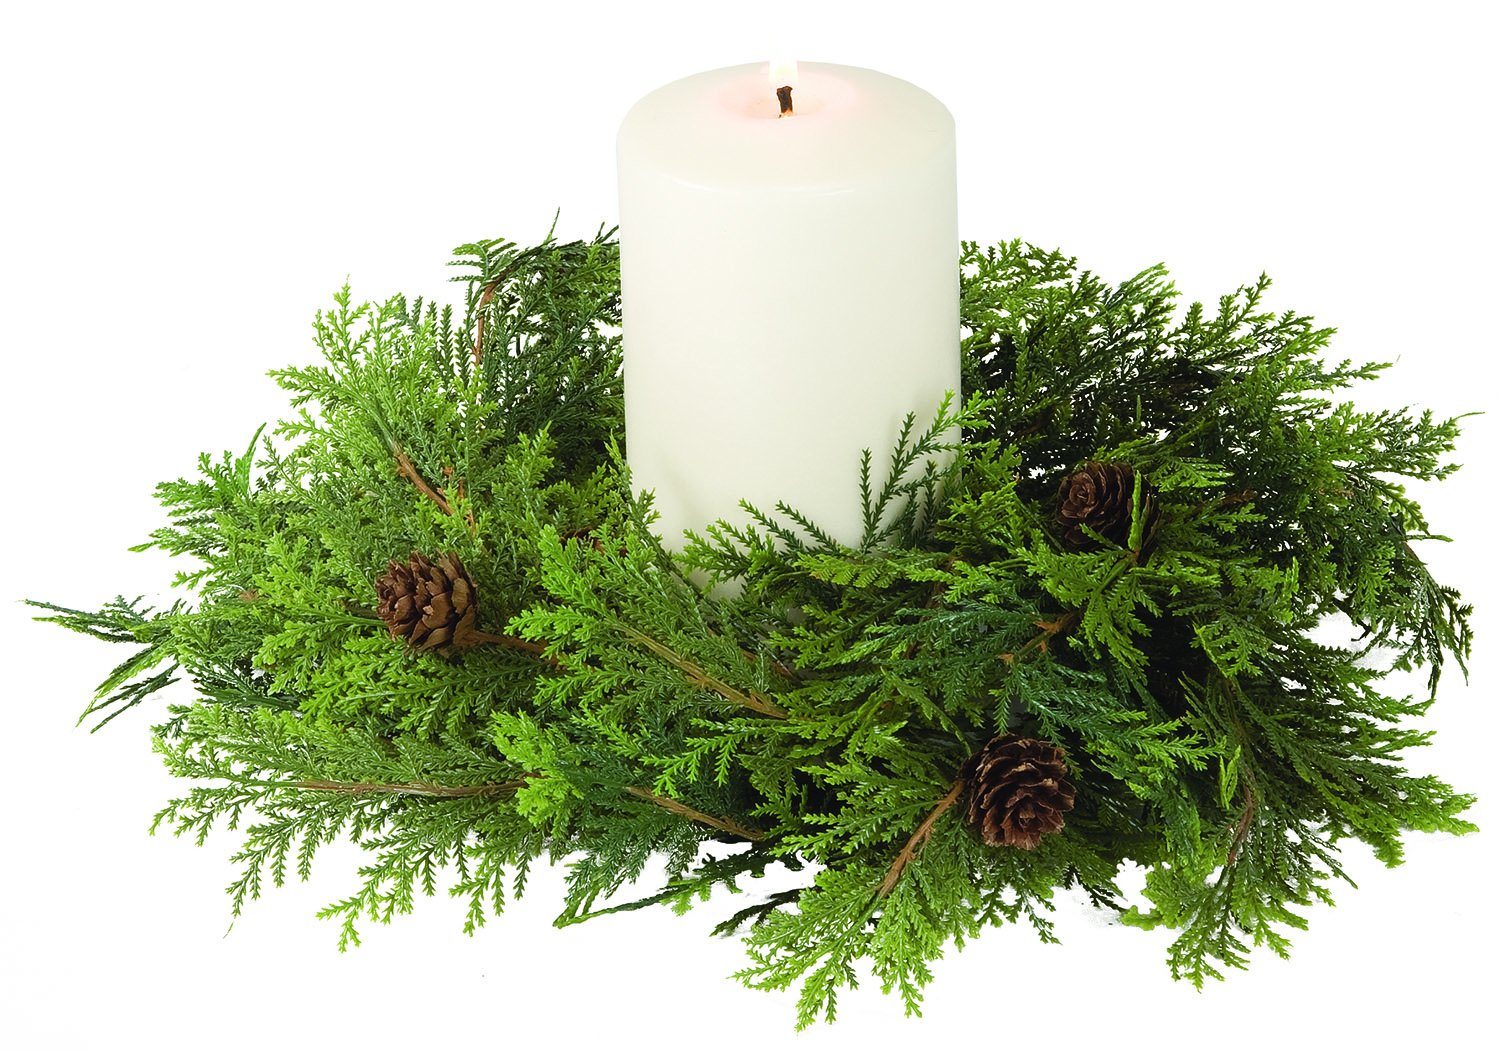 12 Inch Artificial Cypress Pine Christmas Candle Ring With Pine Cones For A 4.5 Inch Pillar Candle by SUL